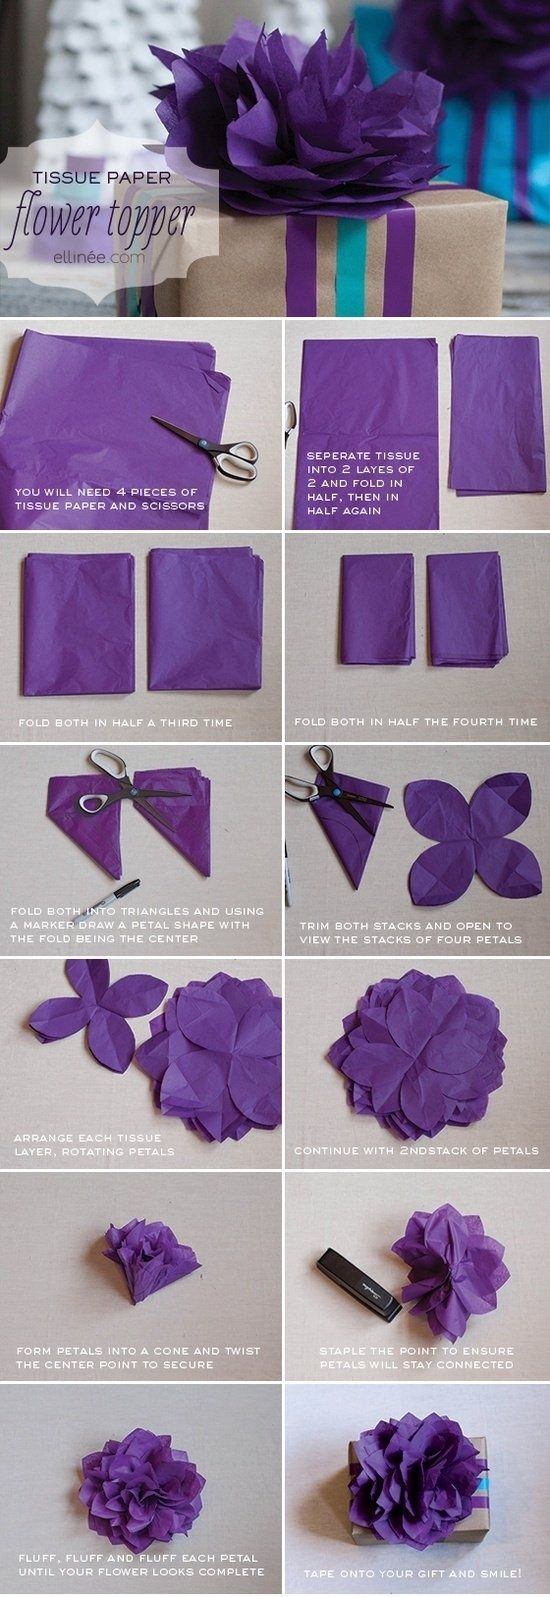 Diy tissue paper decorative flower perfect for gifts paper diy tissue paper decorative flower perfect for gifts mightylinksfo